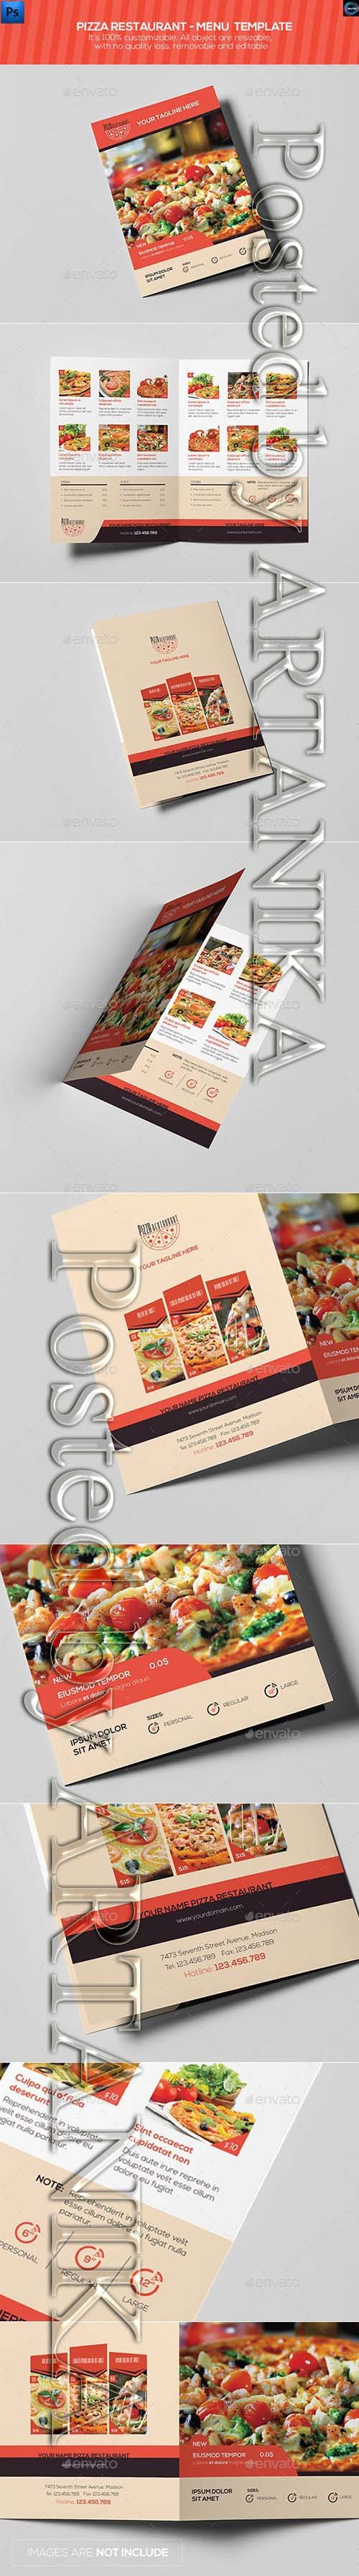 Graphicriver - Pizza Restaurant  Menu Template 12844204